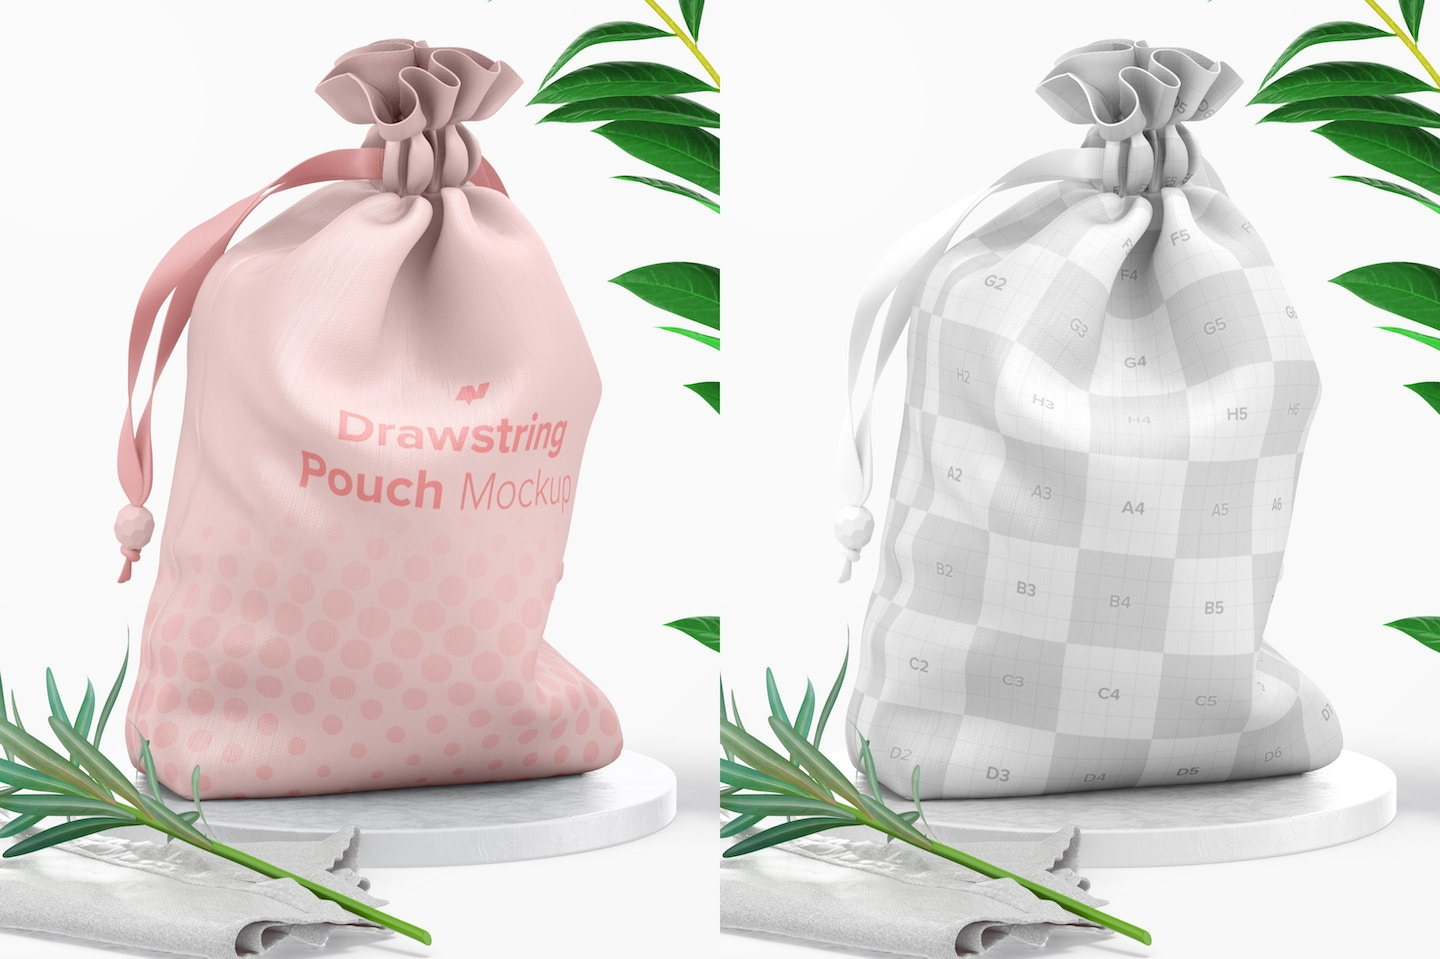 Drawstring Pouch Mockup, Left View